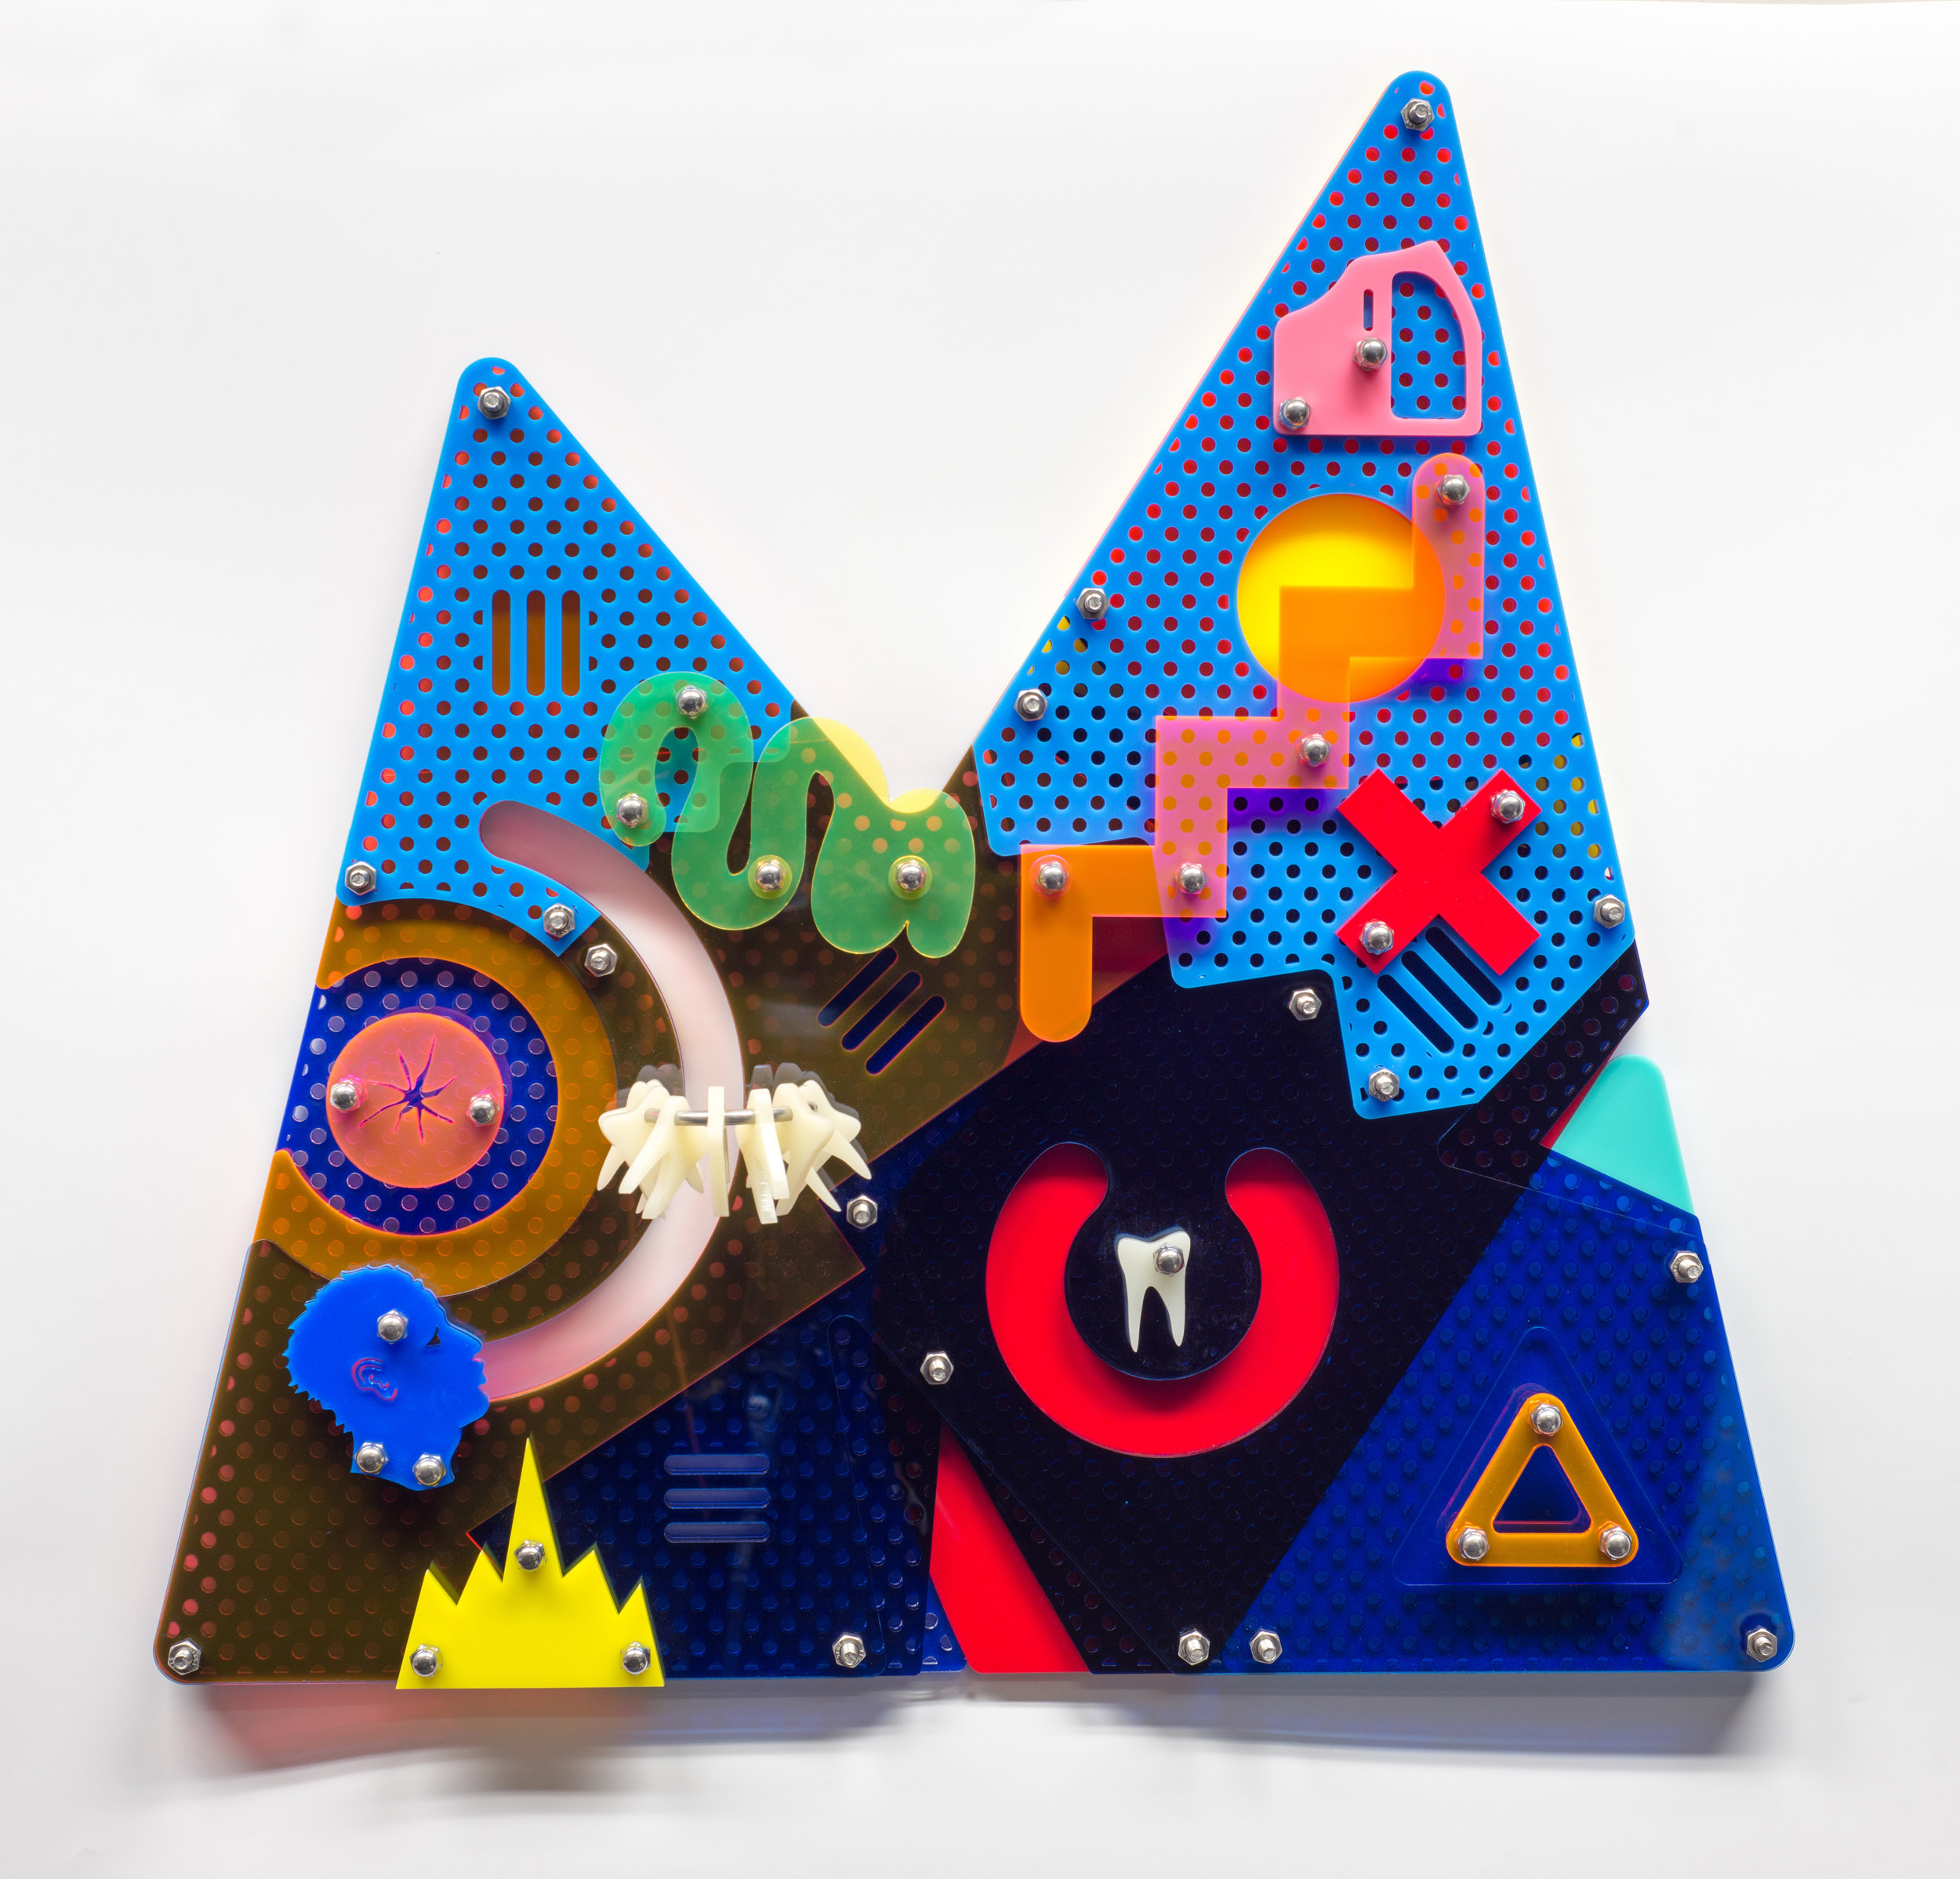 Two Peaks (Blackamoors Collage #62), 2017 Plexiglass and Stainless Steel 23.2 x 23.7 inches